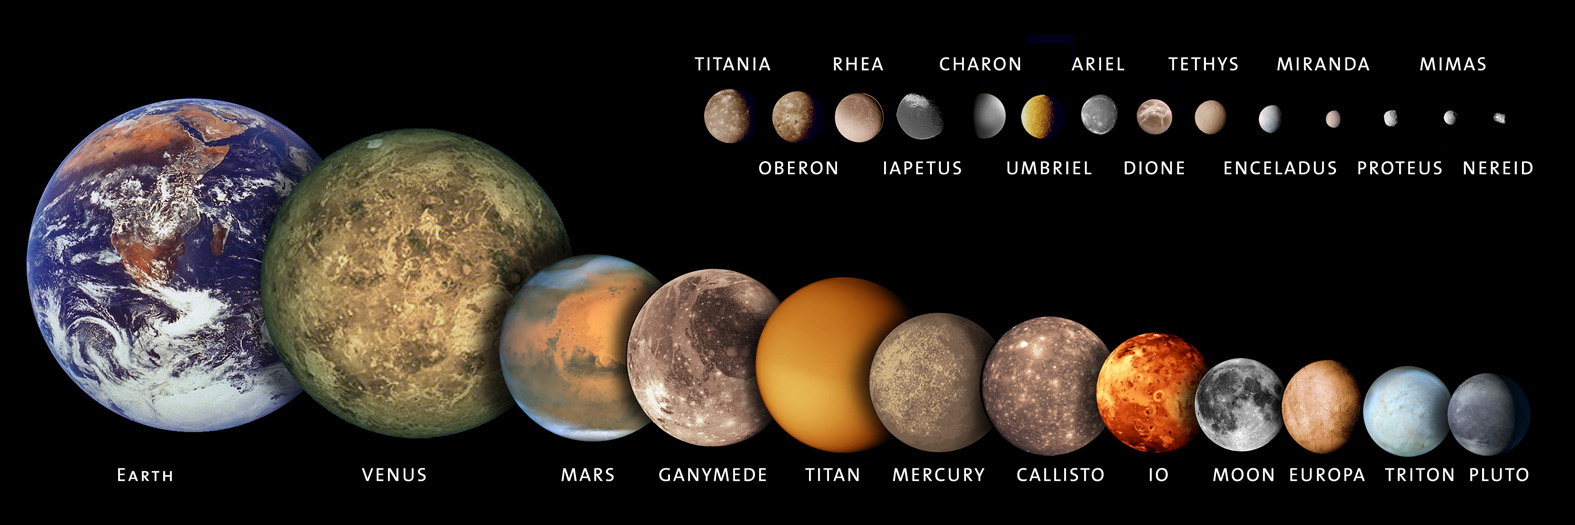 Largest moon in the Solar System are compared